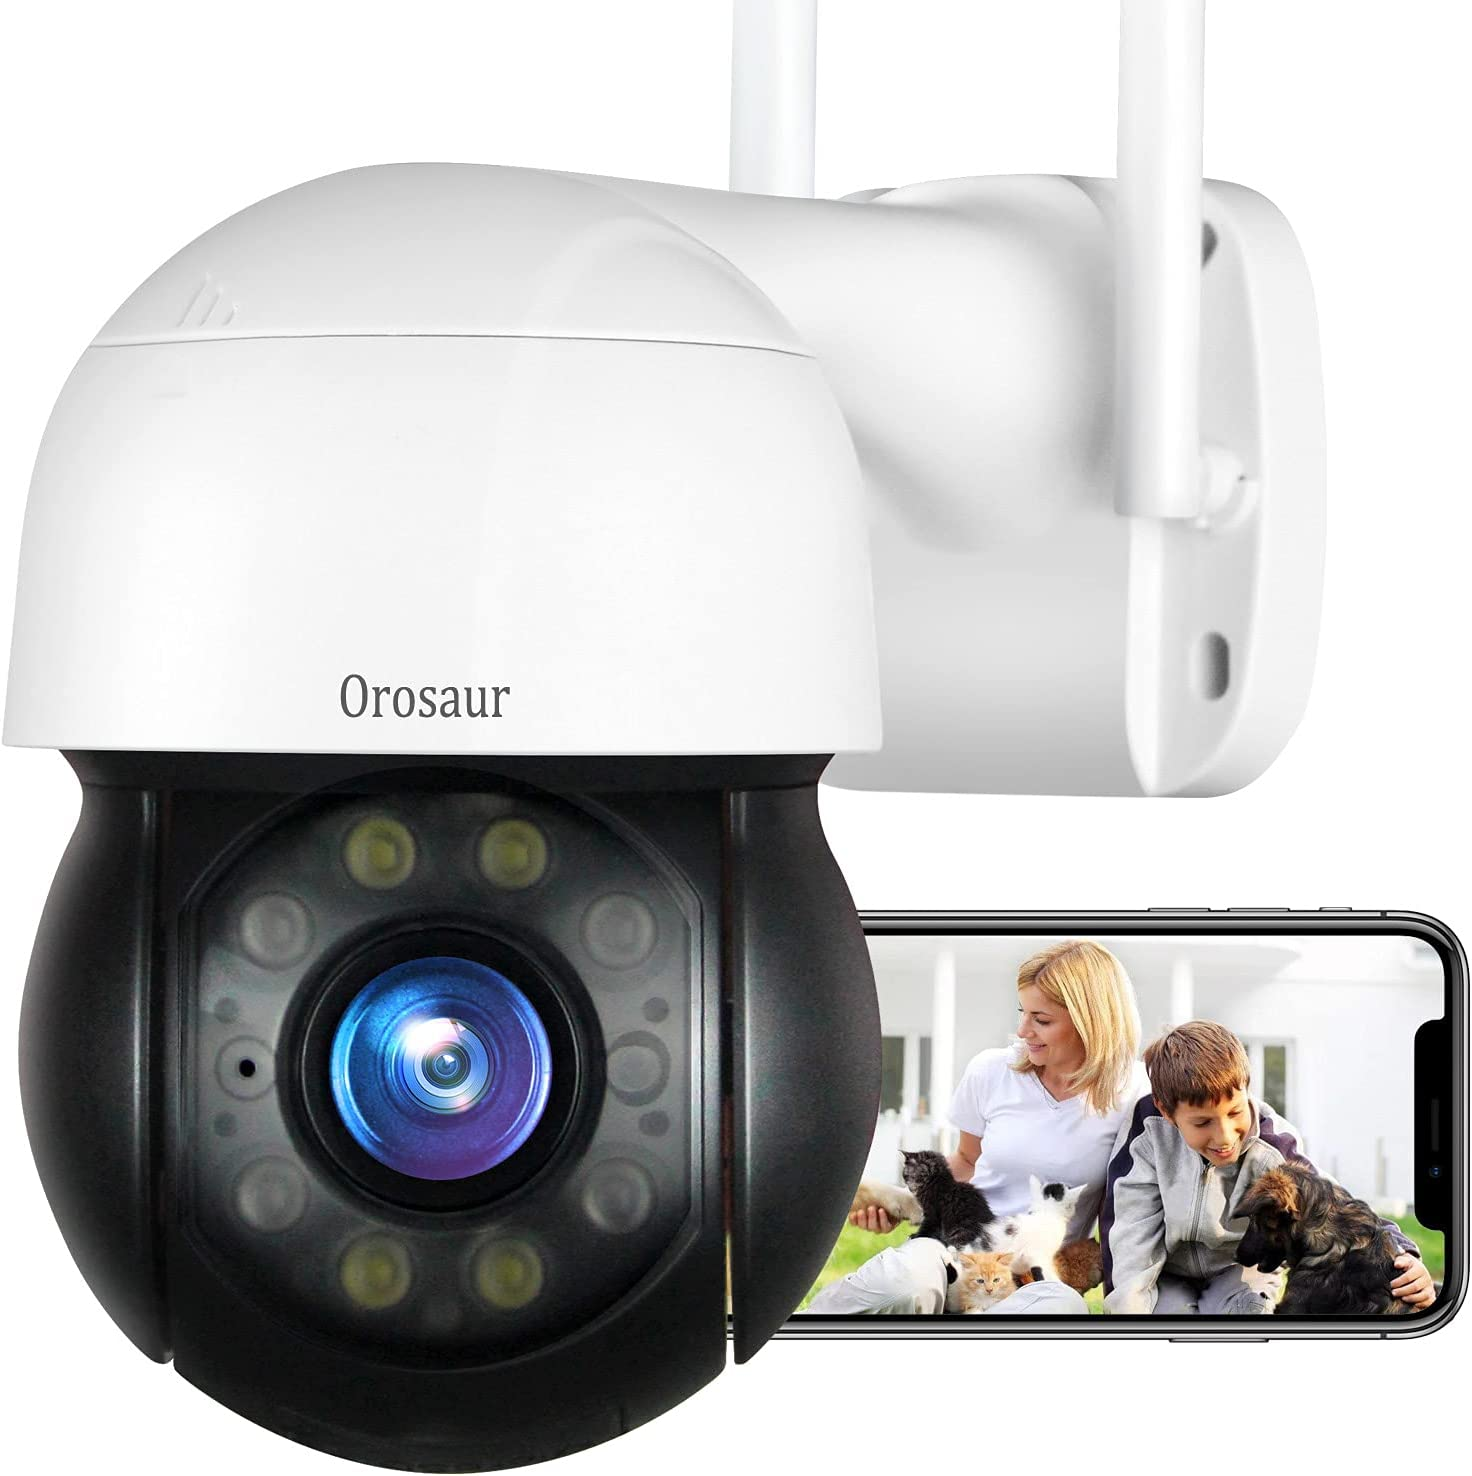 Security Camera Outdoor, OROSAUR Wireless WiFi Security Cameras for Home 1080P Bullet Surveillance Camera, PTZ, 360°View, Night Vision, Motion Detection, Cloud Storage, Work on Alexa,Google Home